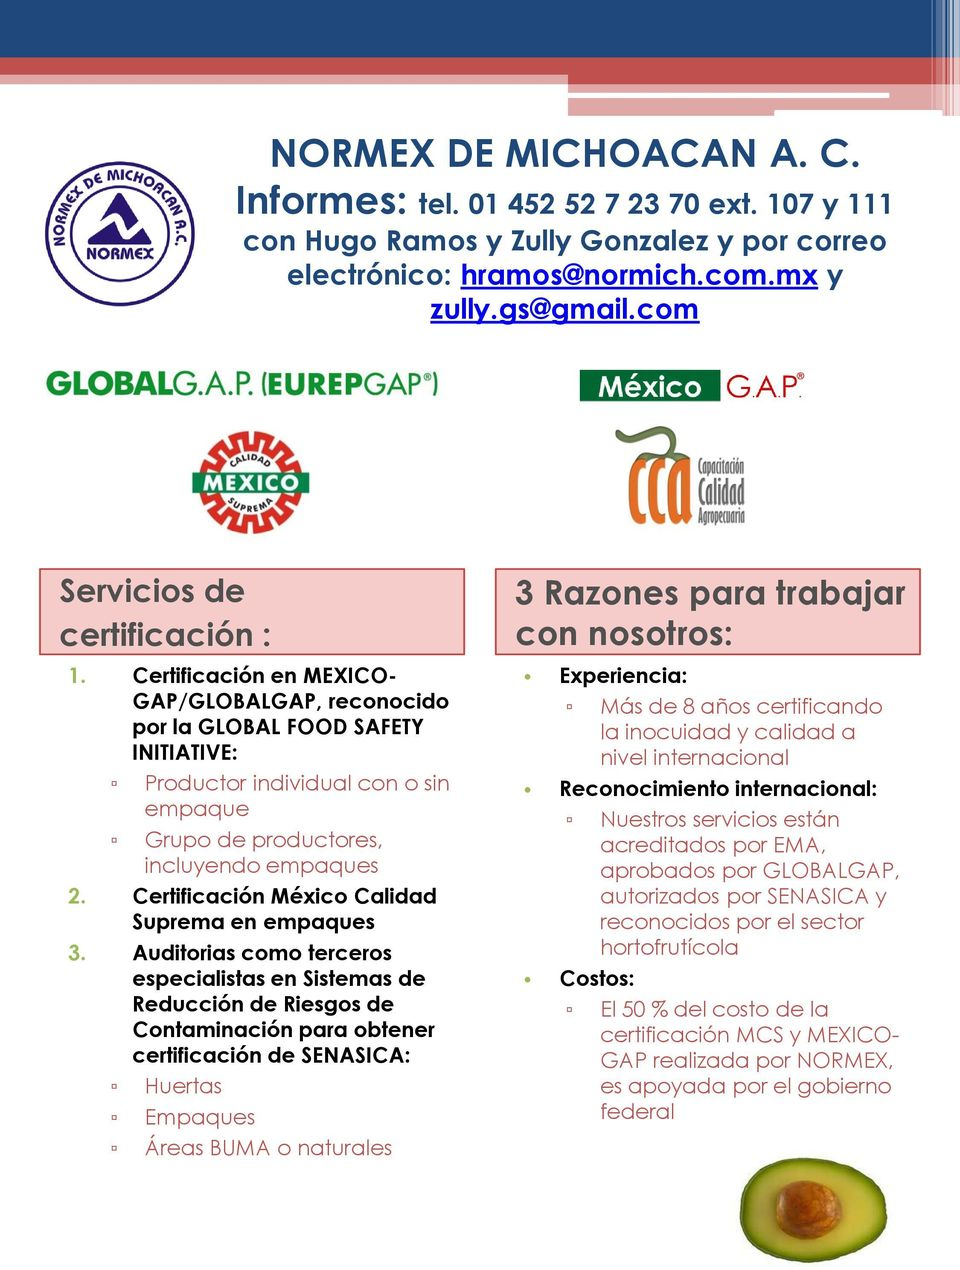 Certificación en MEXICO- GAP/GLOBALGAP, reconocido por la GLOBAL FOOD SAFETY INITIATIVE: Productor individual con o sin empaque Grupo de productores, incluyendo empaques 2.